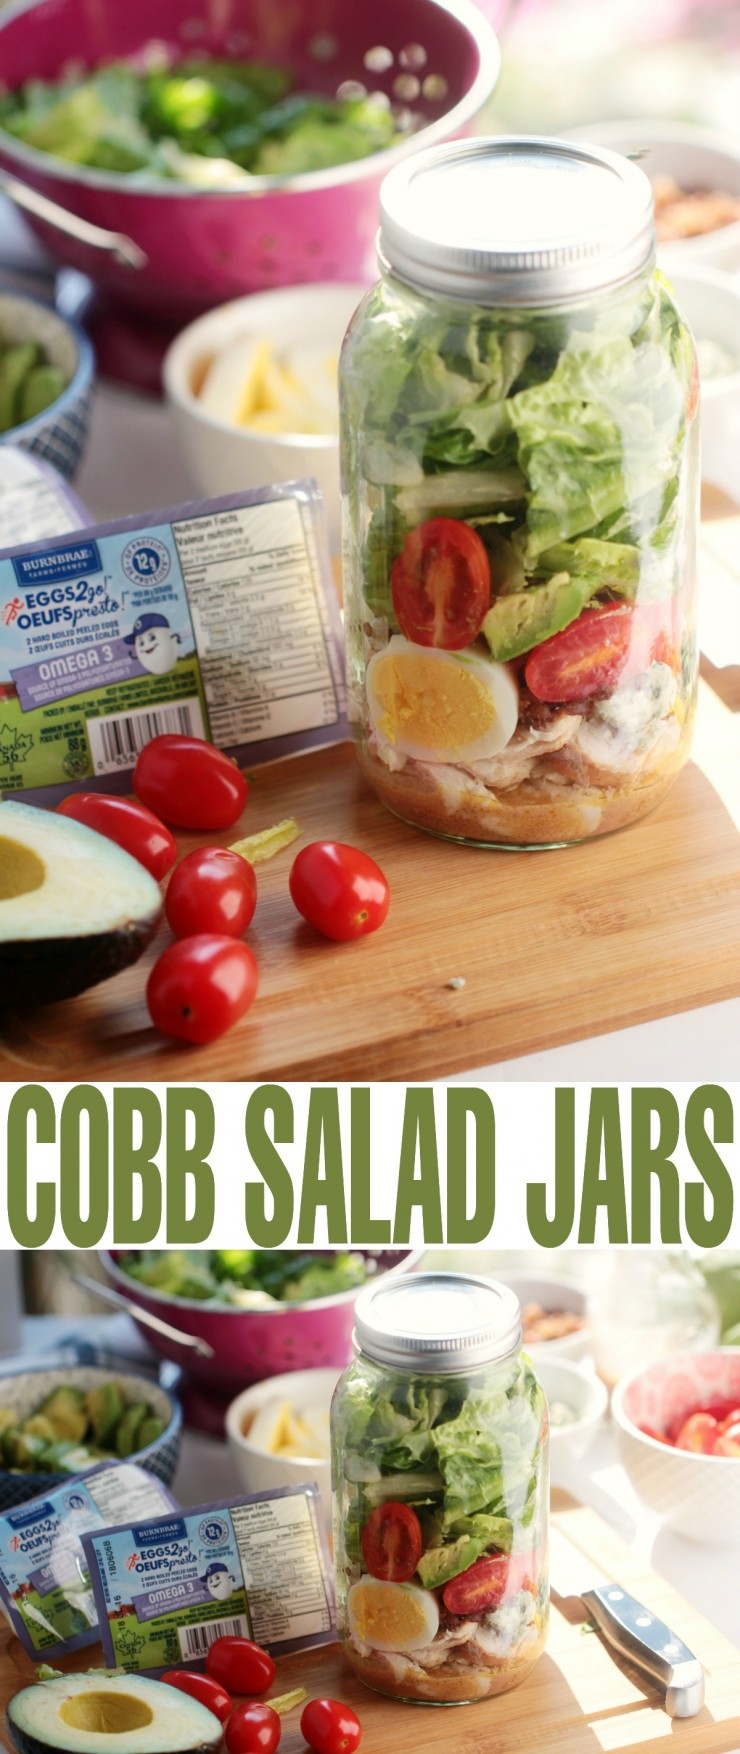 his Cobb Salad in a Jar recipe is a great way to make your weekdays easier by preparing them ahead of time so you can grab and go. It's a nutritious and filling salad packed full of protein.